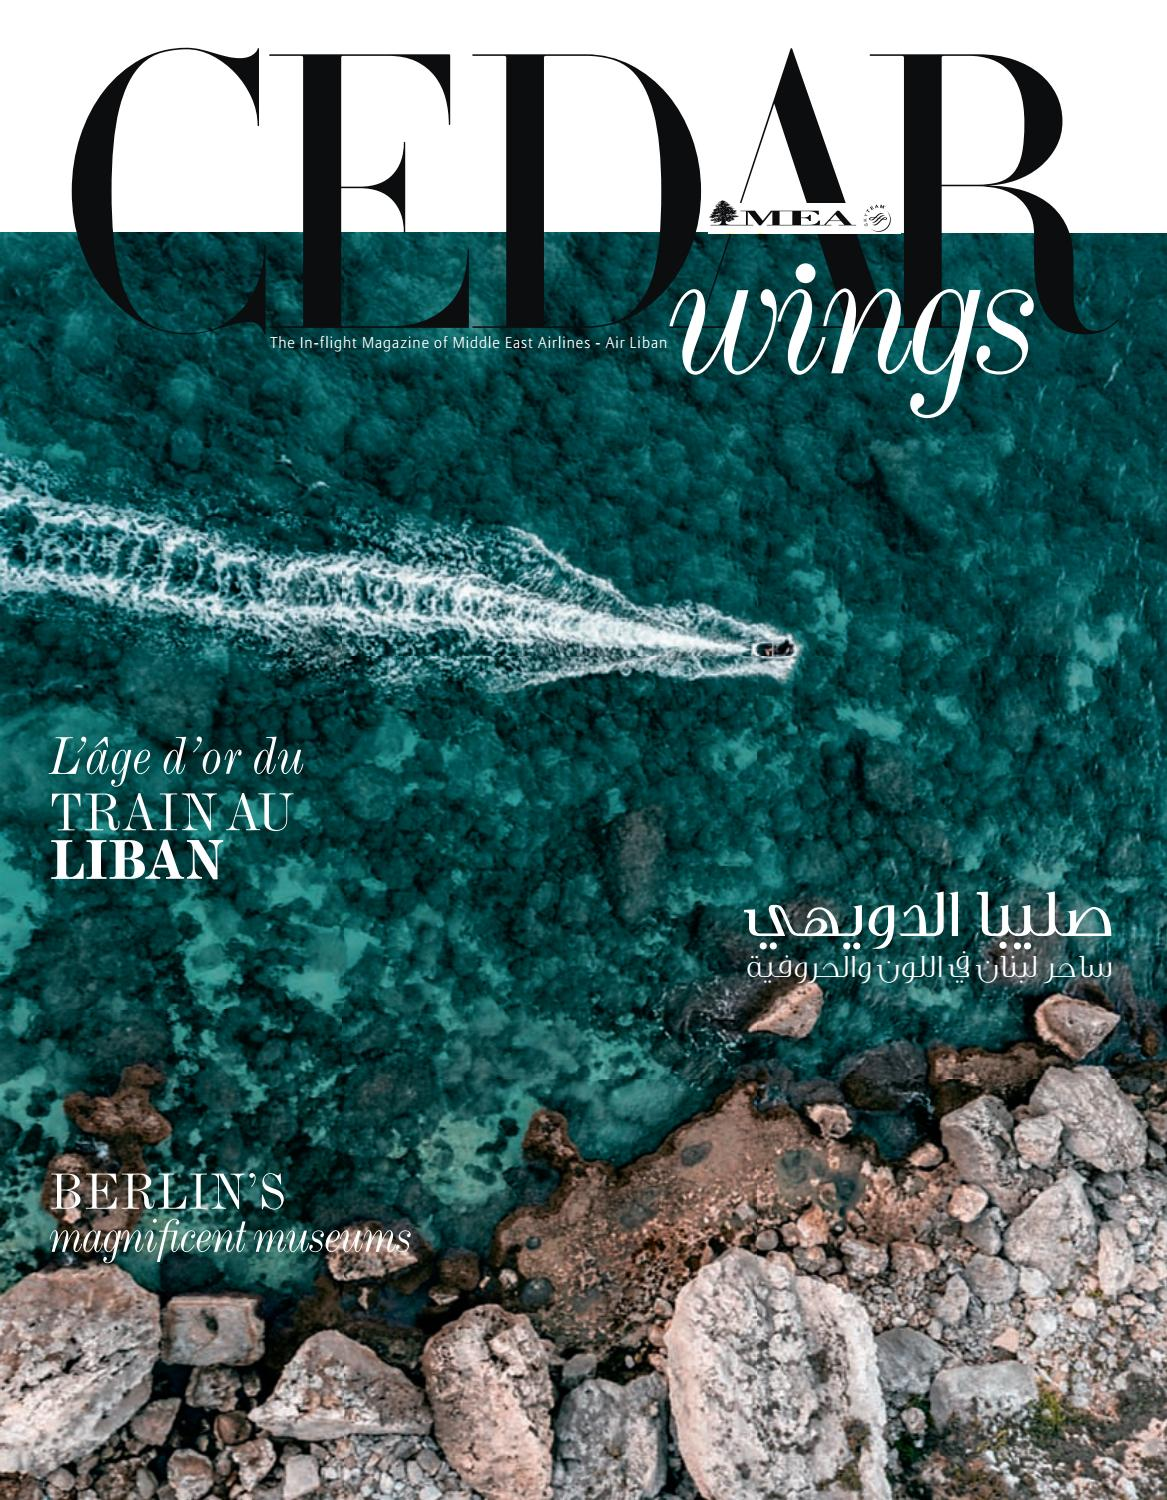 300ad57e1 Cedar Wings magazine. April - May 2019 by CreativeLounges - issuu